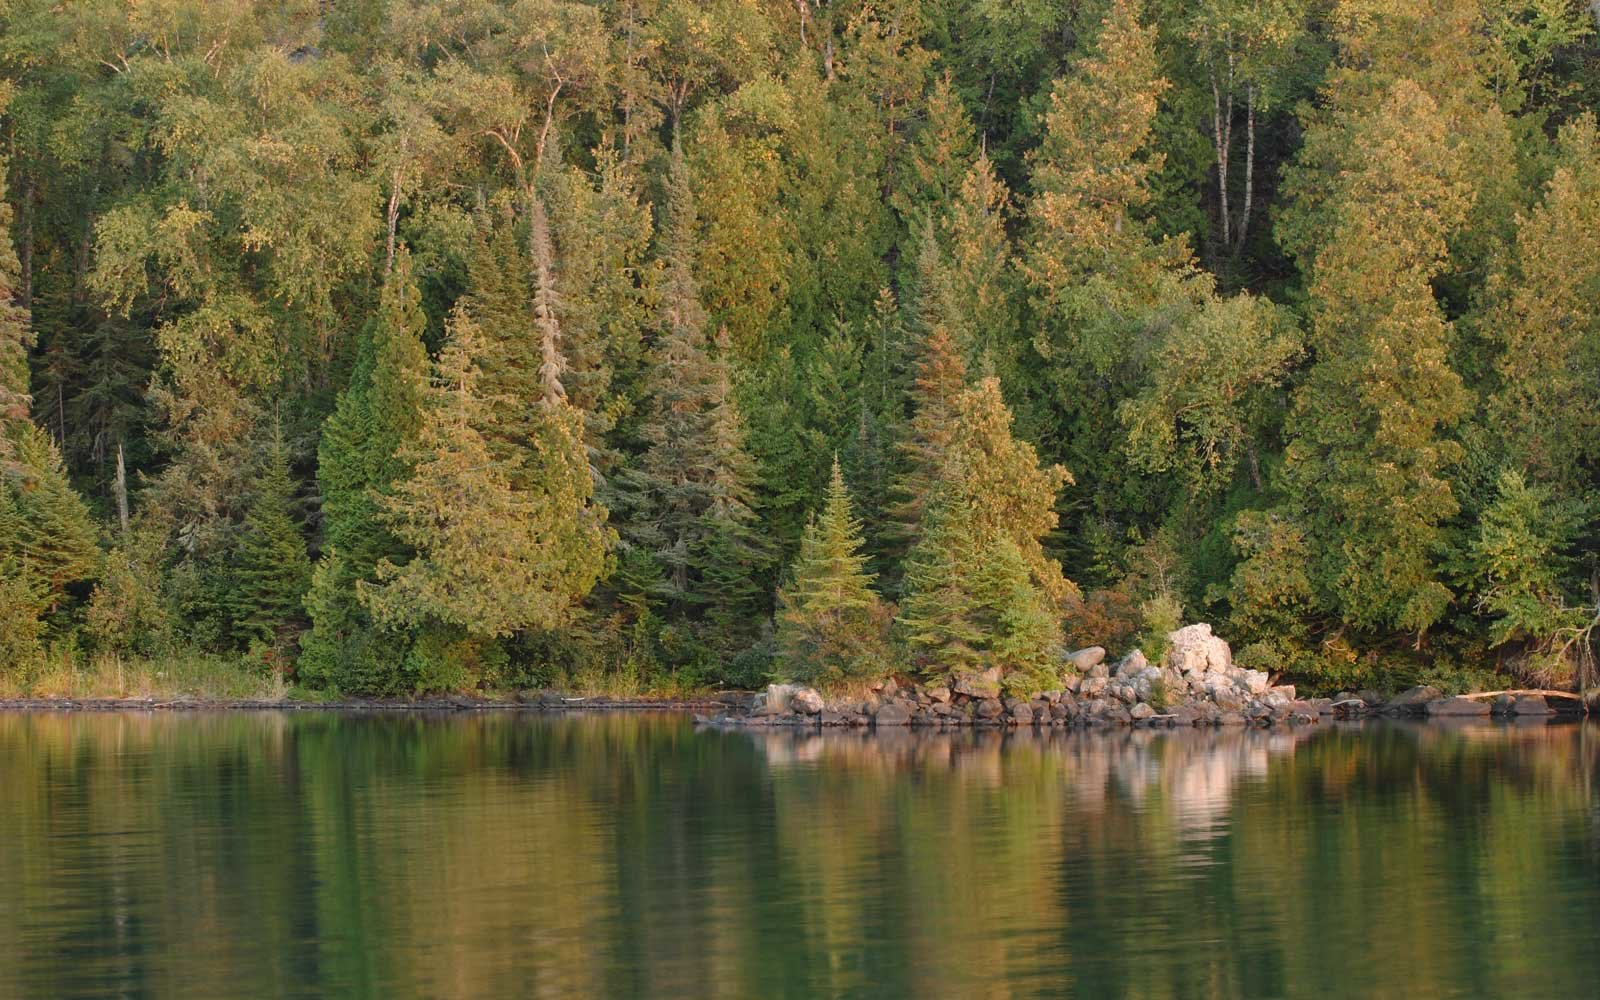 The Chippewa Harbor creates a scenic reflection at the Isle Royale National Park in Michigan.